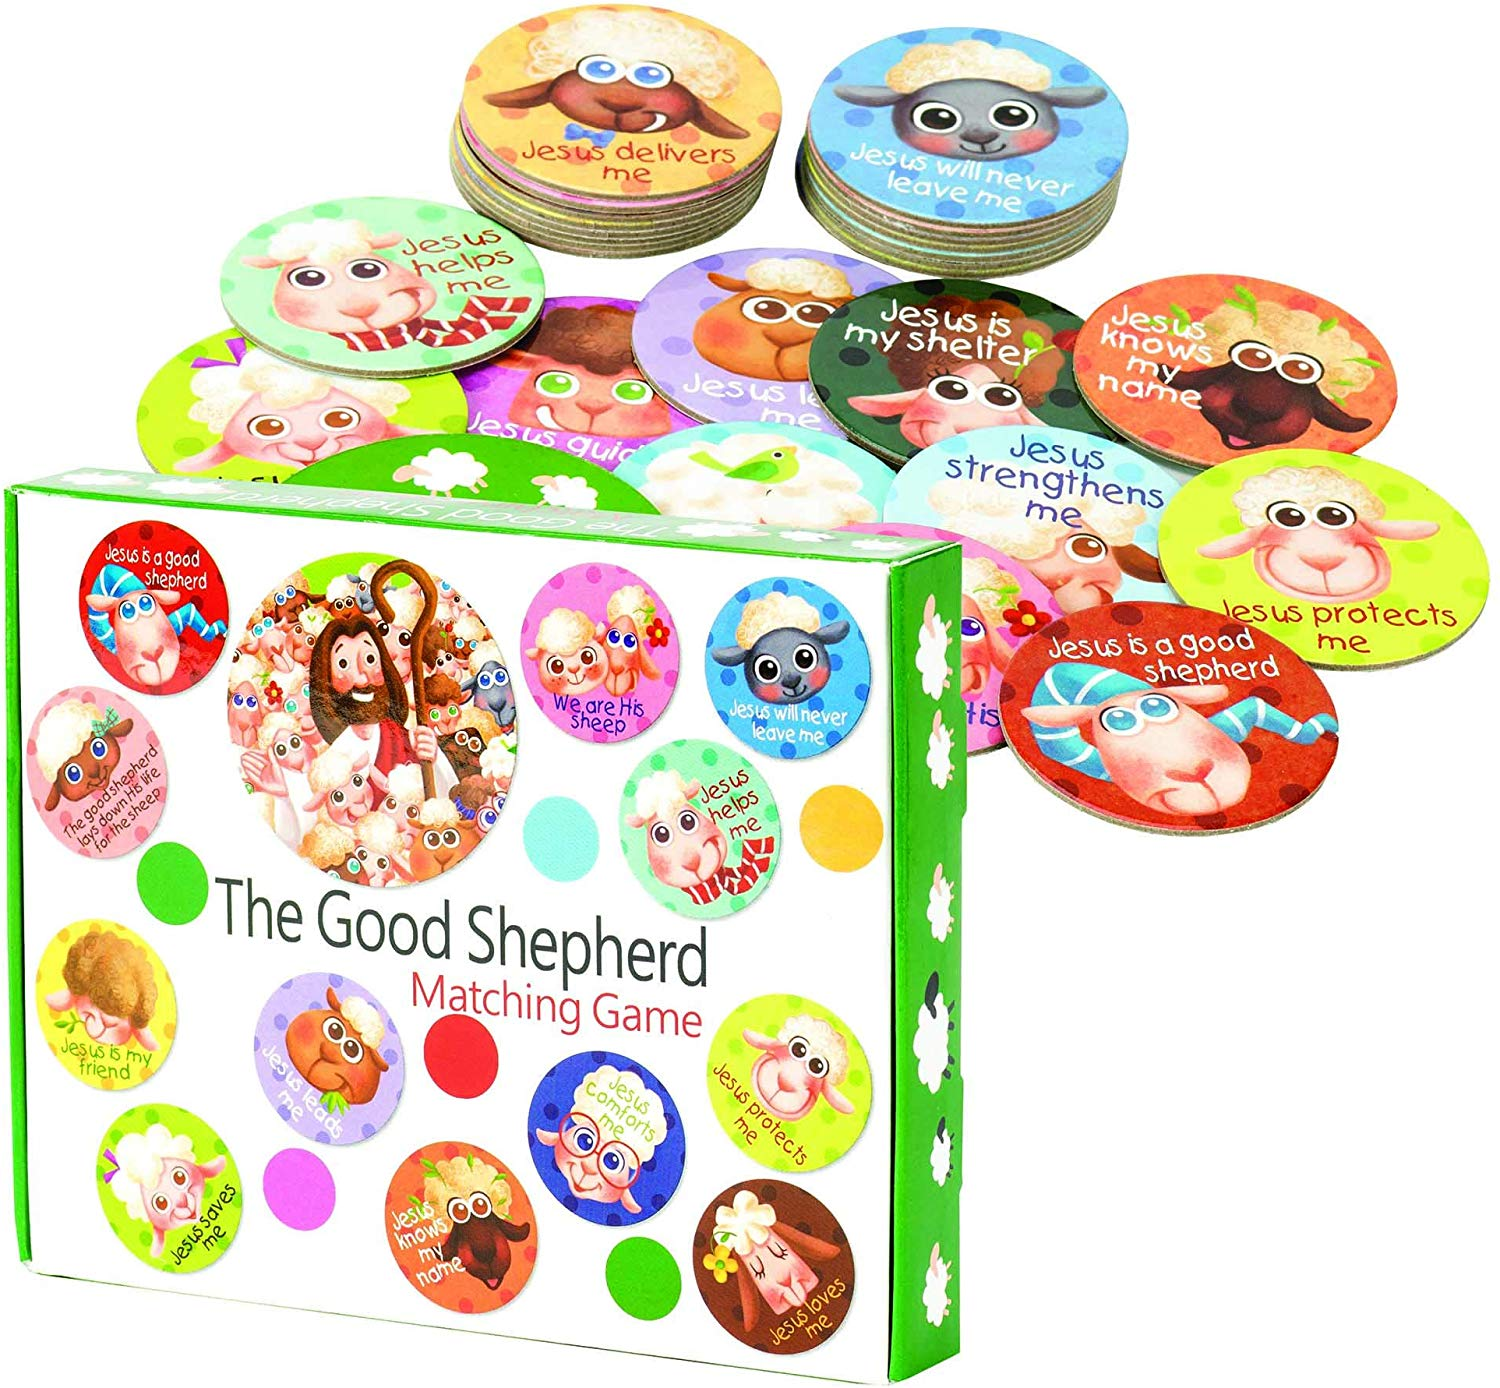 The Good Shepherd Matching Game